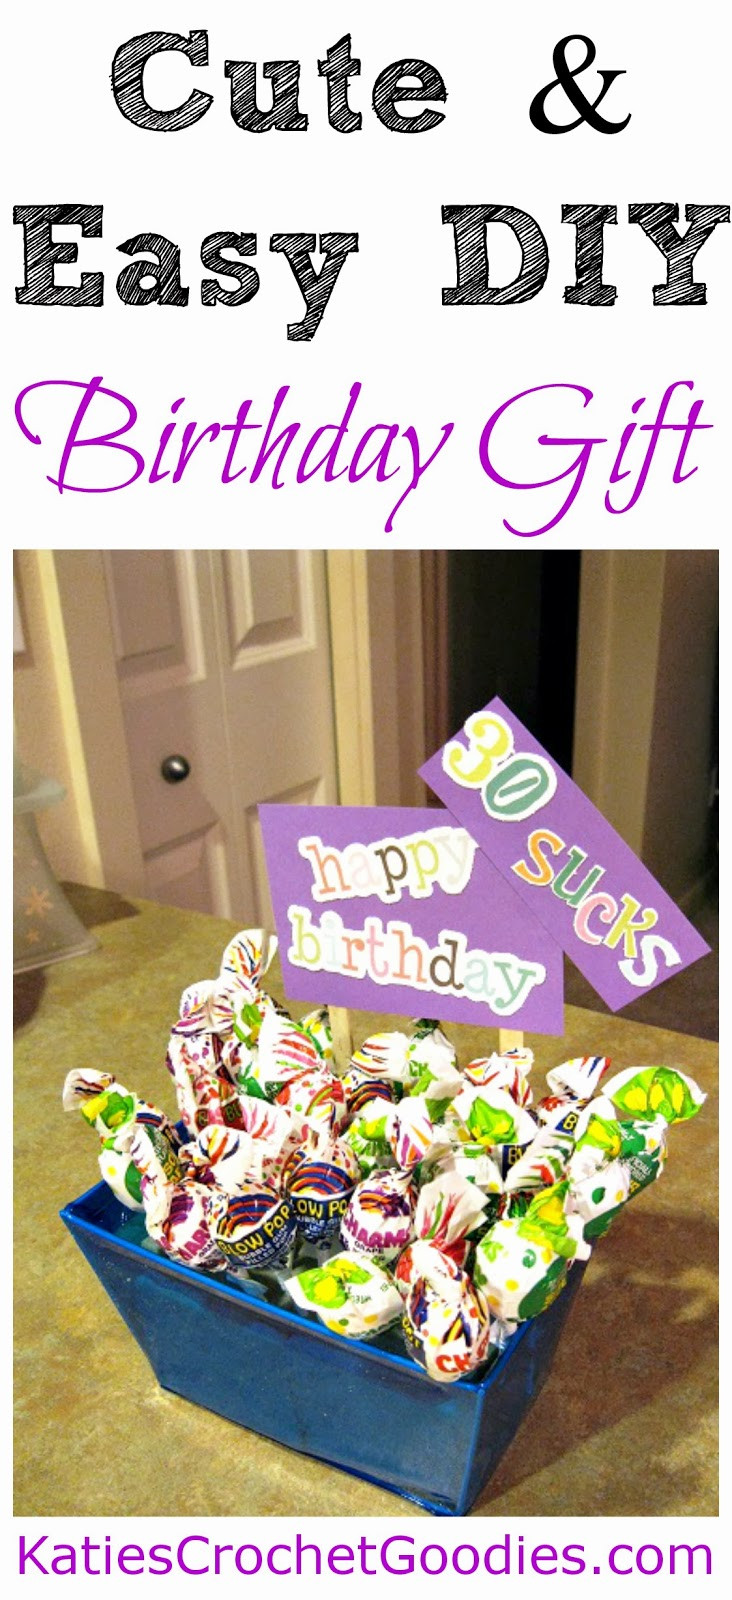 Best ideas about Funny Birthday Gifts . Save or Pin Funny Sucker Birthday Gift Idea Katie s Crochet Goo s Now.